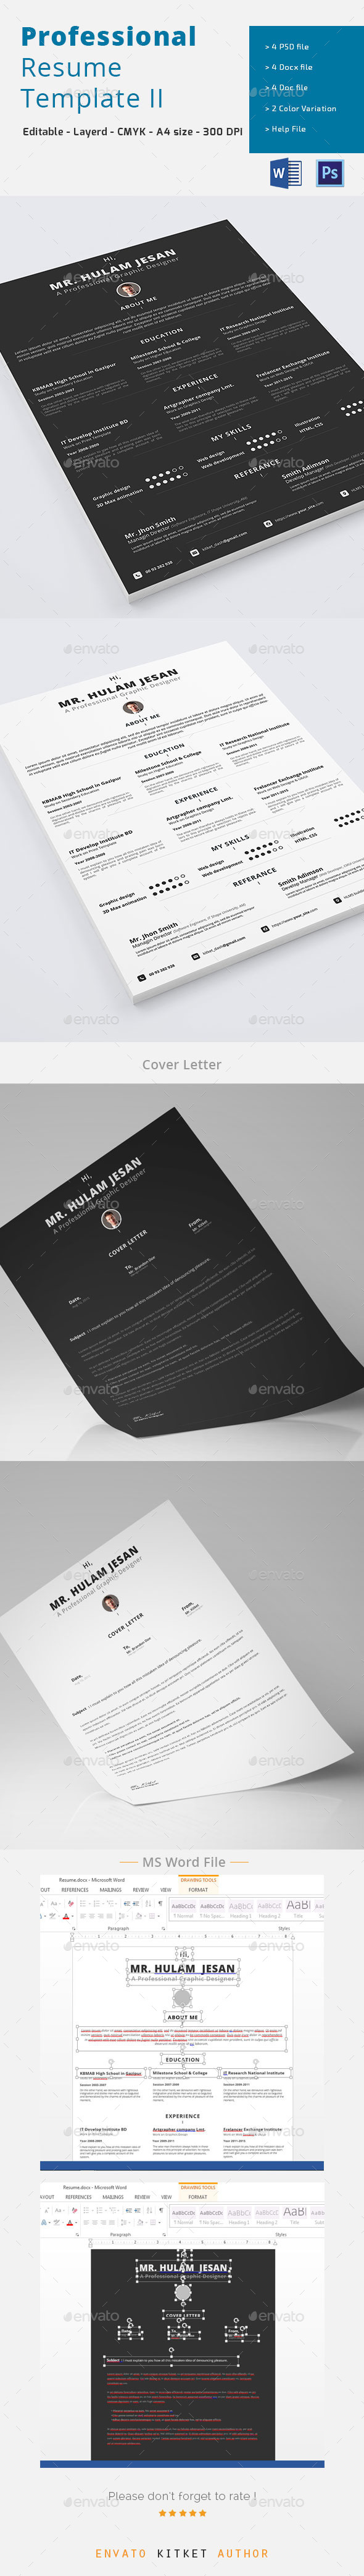 Professional Resume Template II